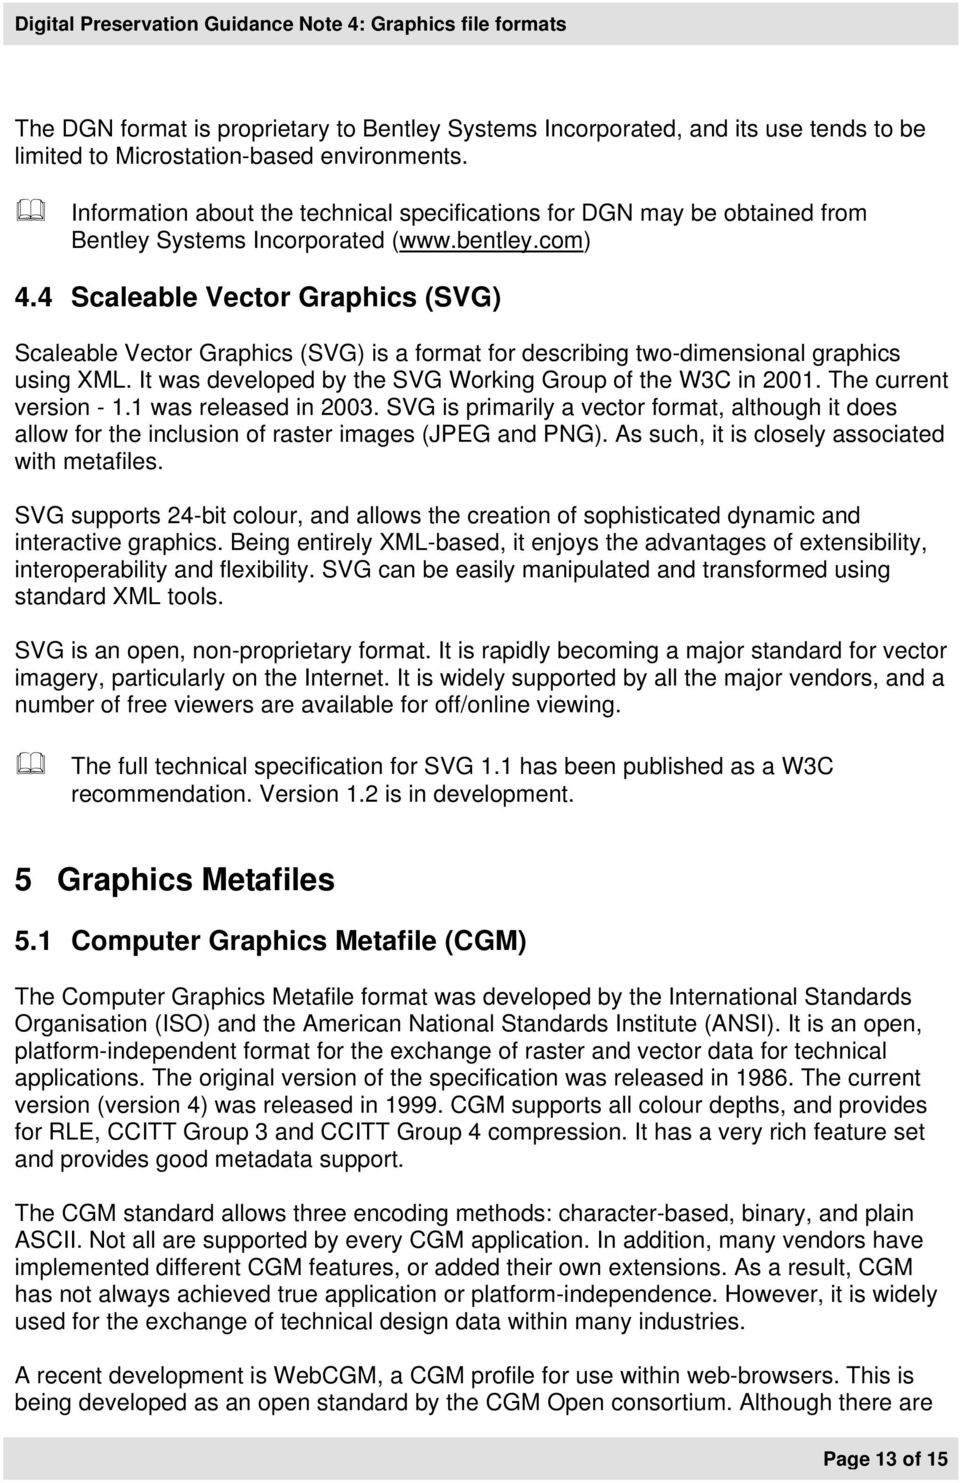 4 Scaleable Vector Graphics (SVG) Scaleable Vector Graphics (SVG) is a format for describing two-dimensional graphics using XML. It was developed by the SVG Working Group of the W3C in 2001.